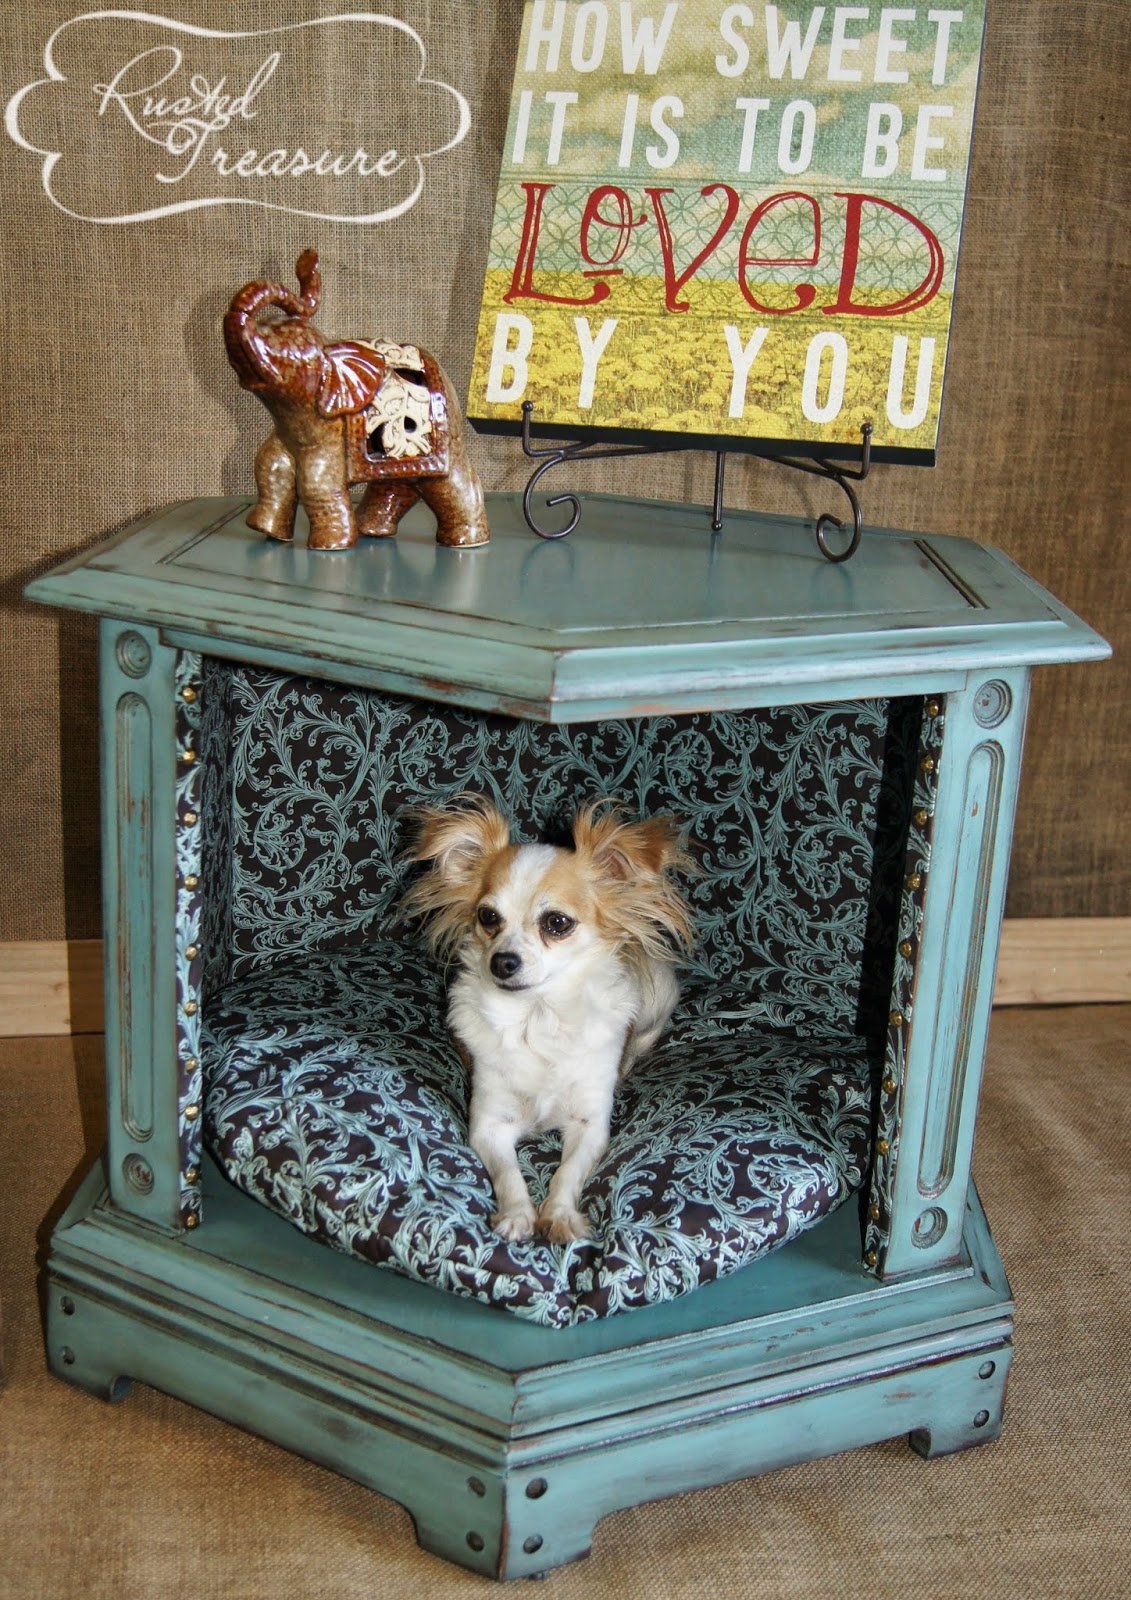 royal-pet-bed-from-old-table-dip-feed-3